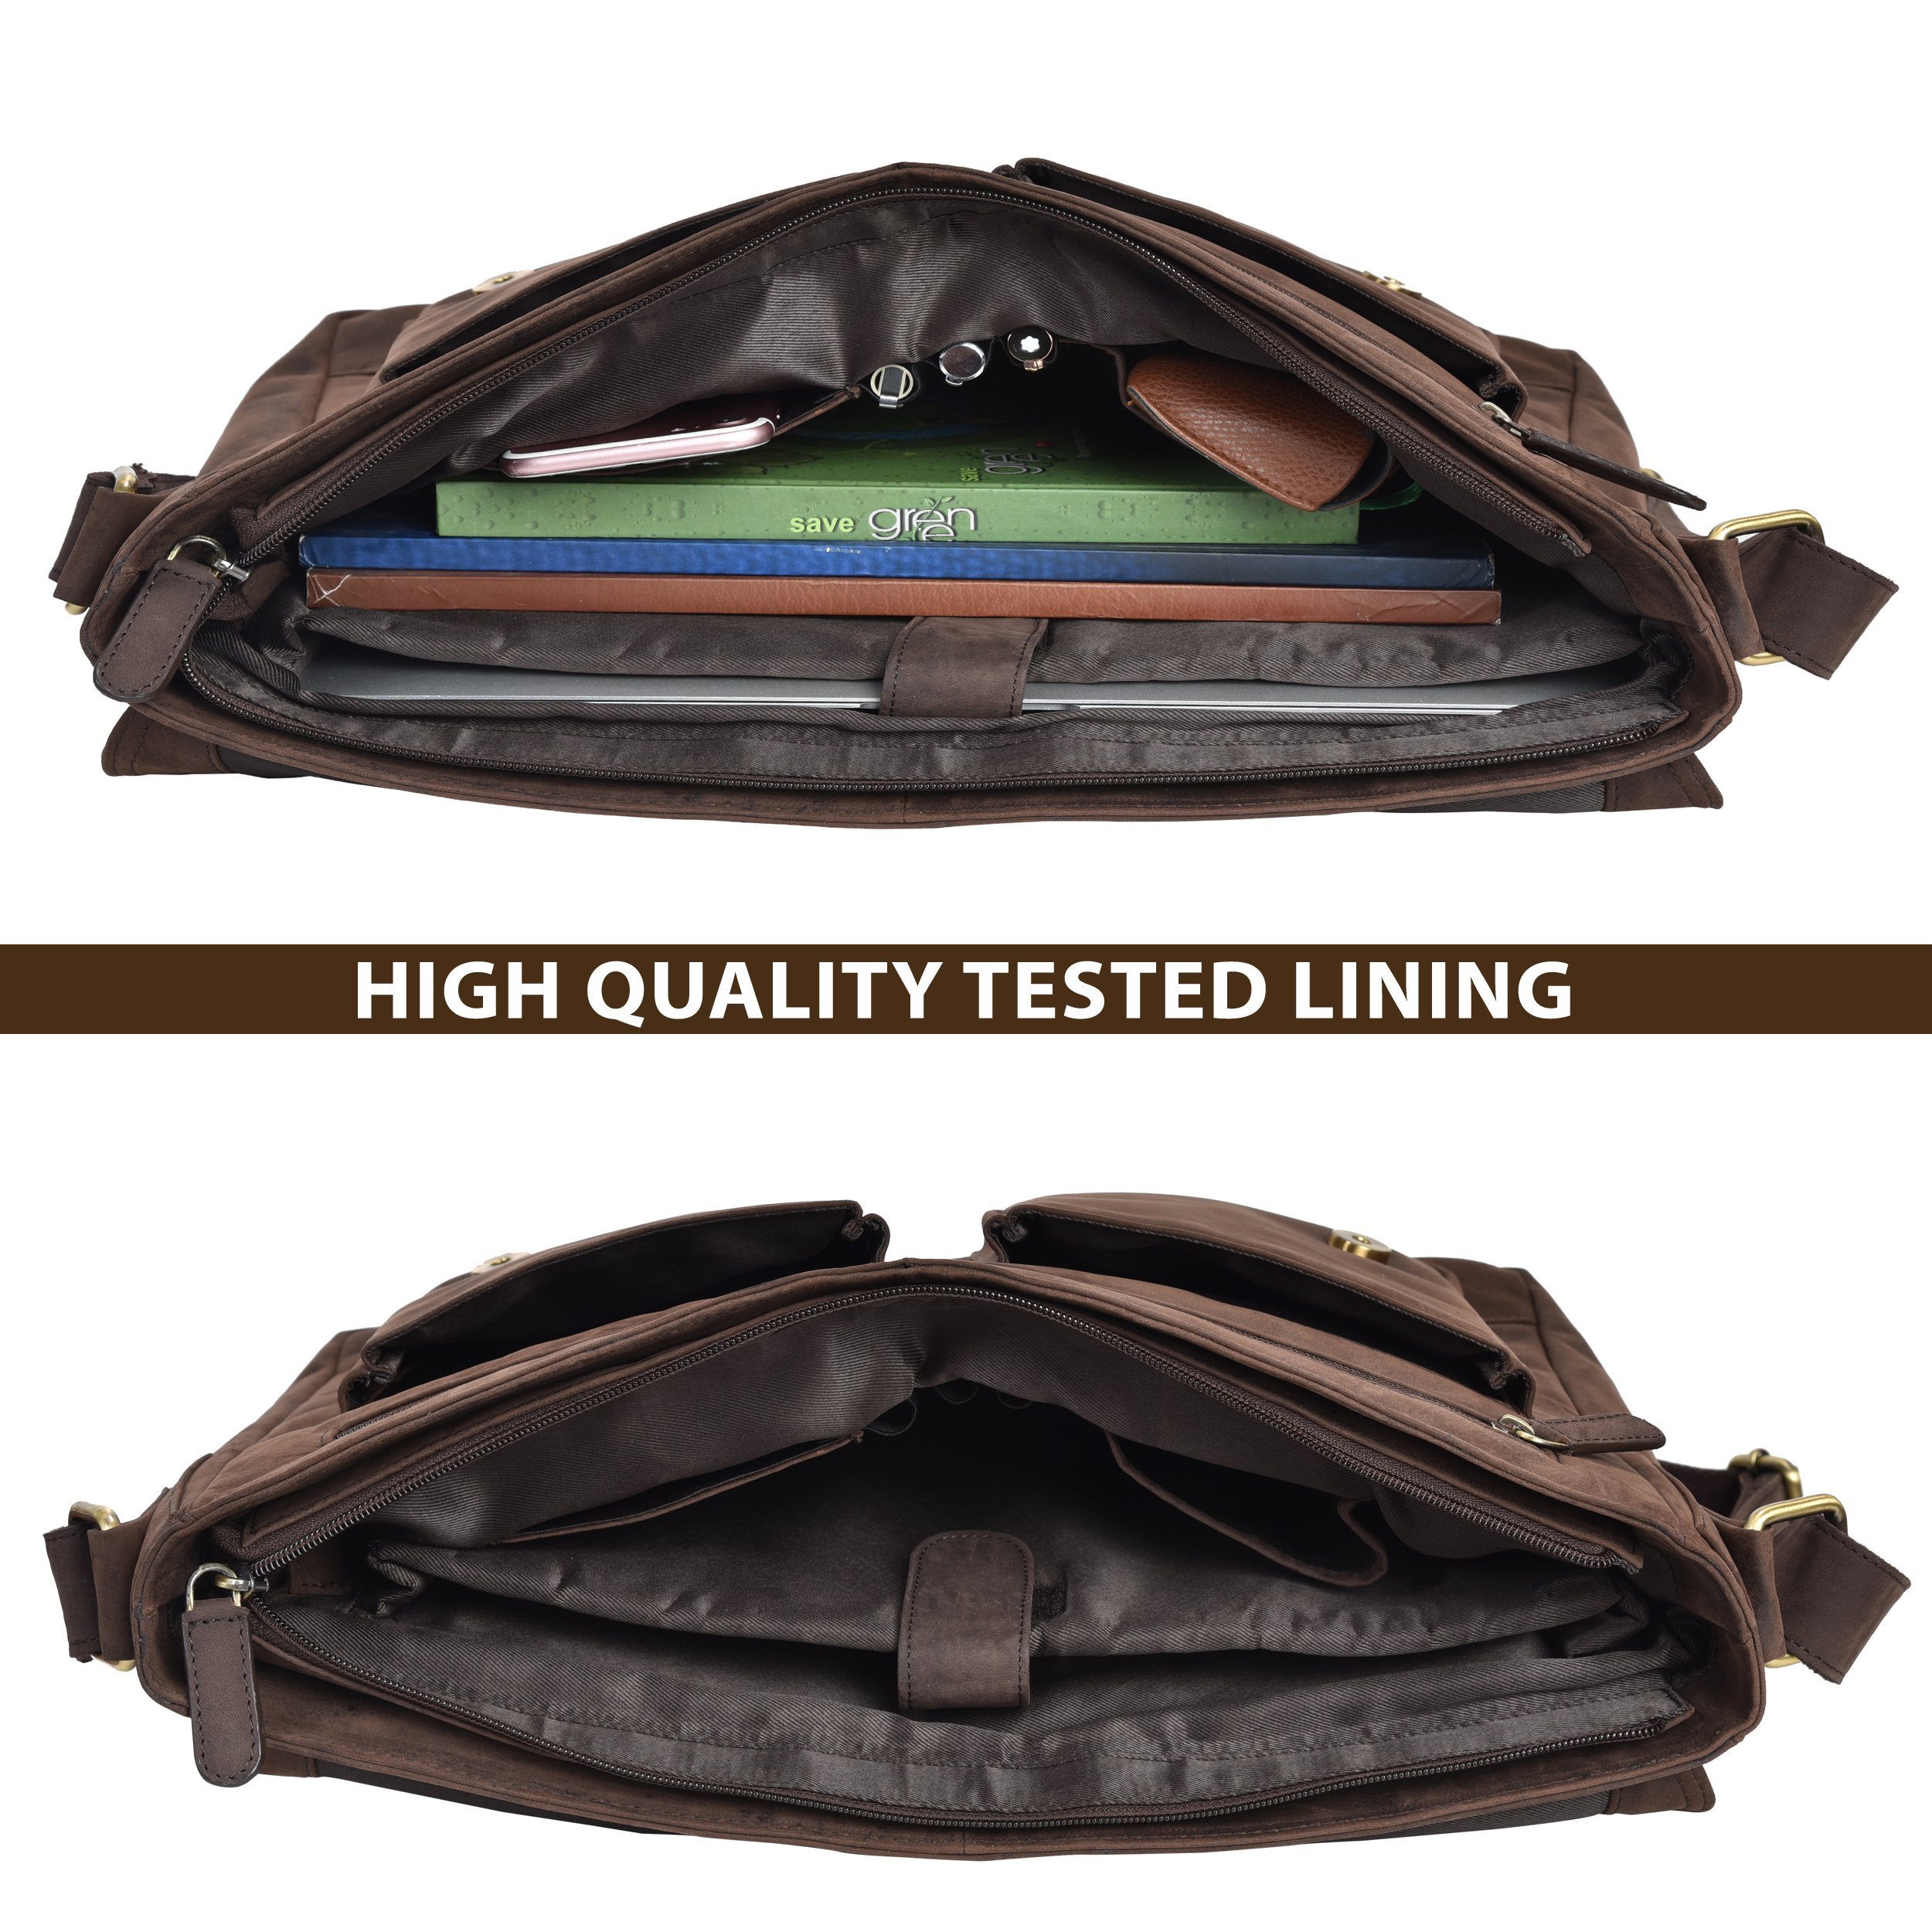 Leather Messenger Bag for Men & Women 14inch laptop Bag for Travel College Work - Handmade by LEVOGUE (Brown Oily Hunter) by LEVOGUE (Image #5)